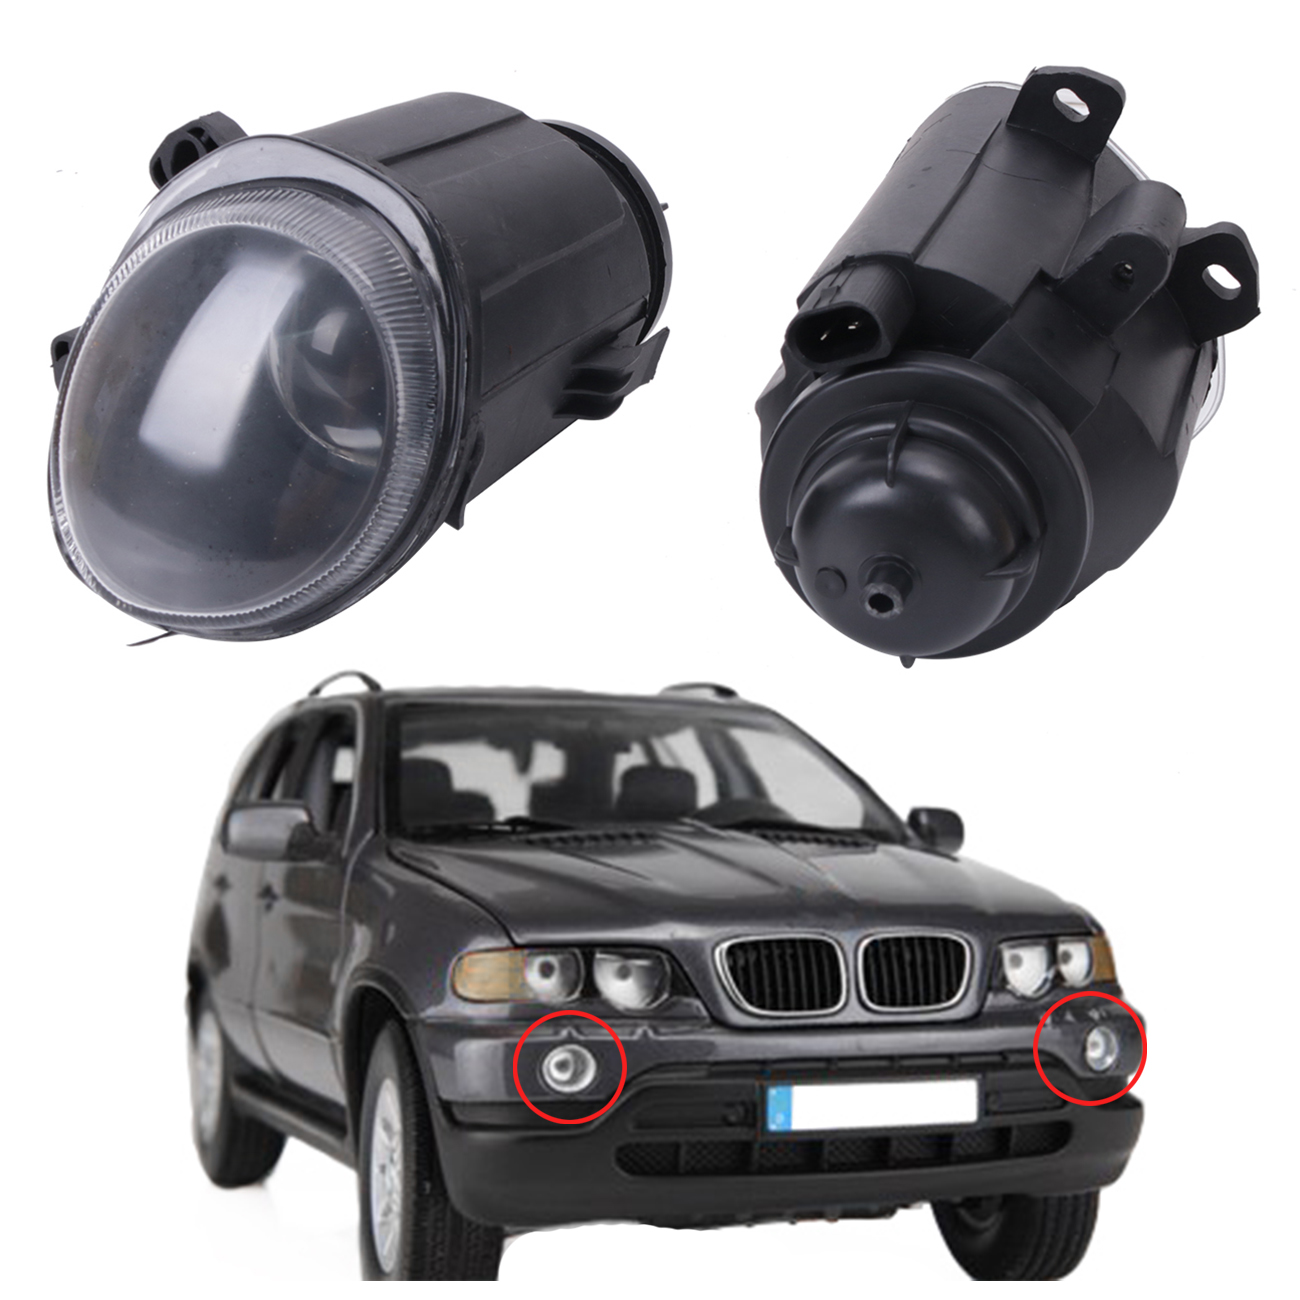 2x Front Fog Lights Clear Lens Driving Lamps Foglamp For BMW X5 E53 2000 2001 2002 OEM 63178409025 63178409026 #W087 high quality 1pair bumper driving fog light lamp lens for bmw e39 5 series 525i 530i 540i 4door 2001 2002 2003 car accessory q35